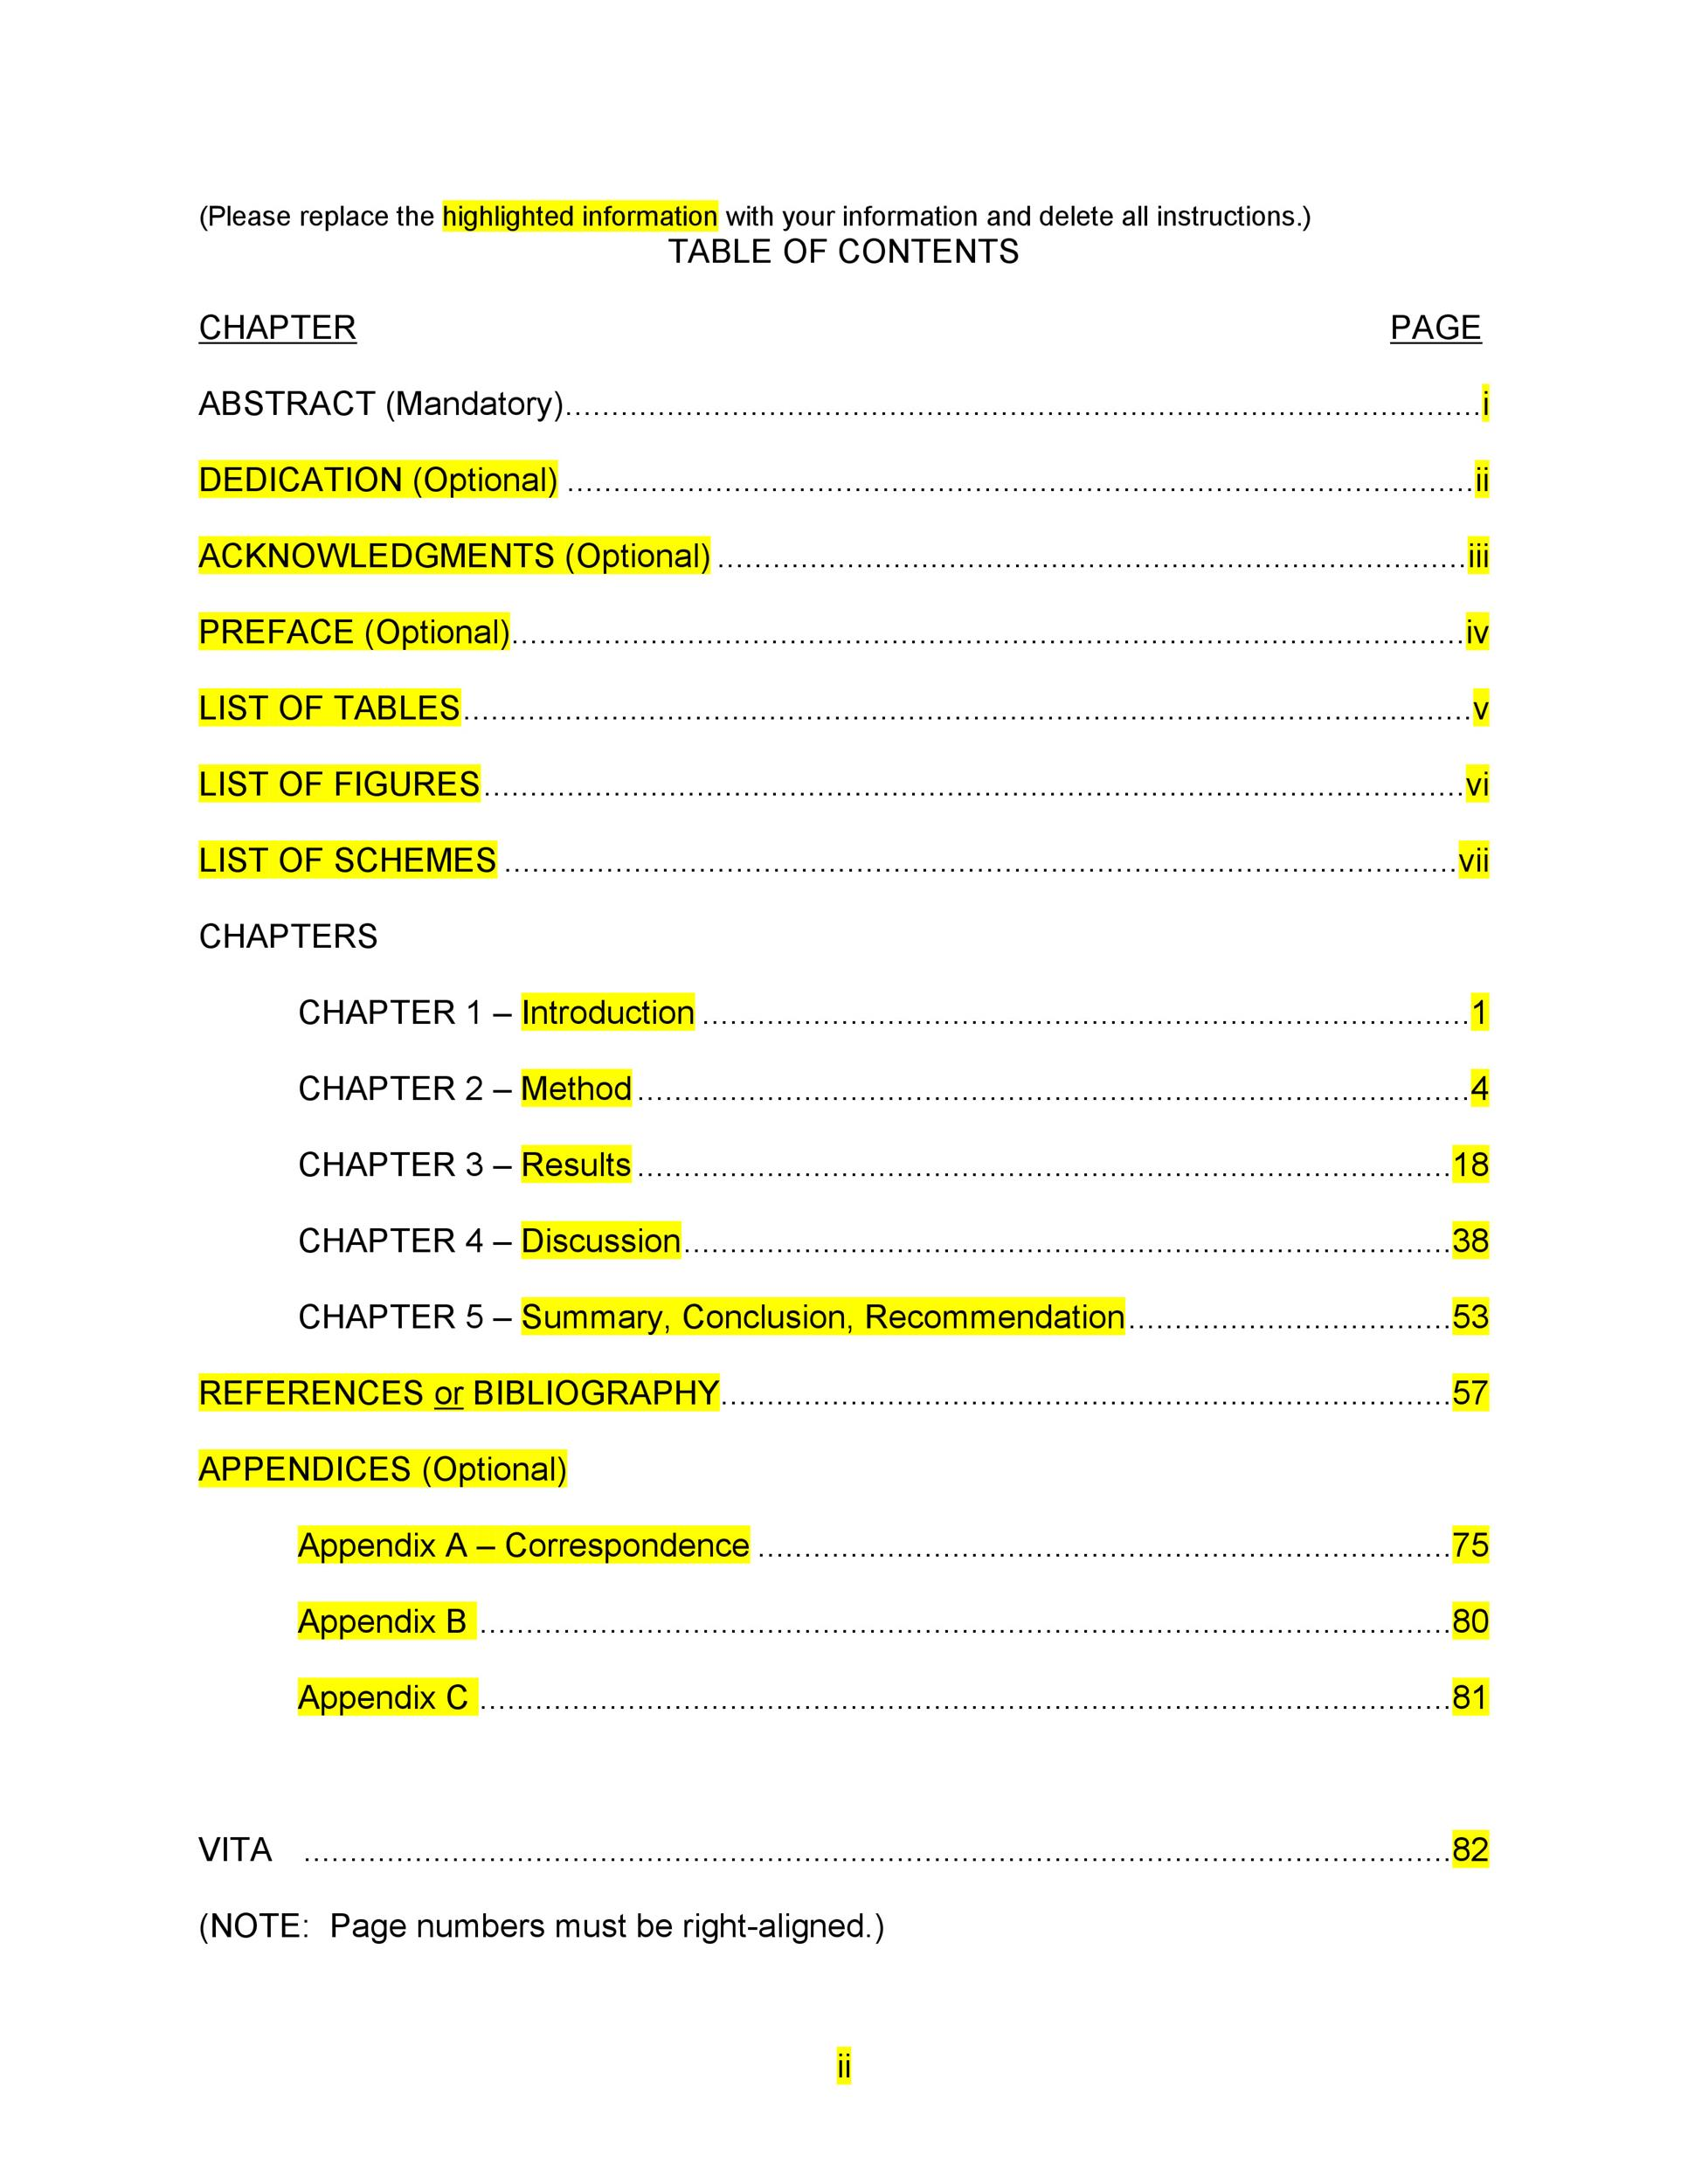 20 table of contents templates and examples  u1405 template lab